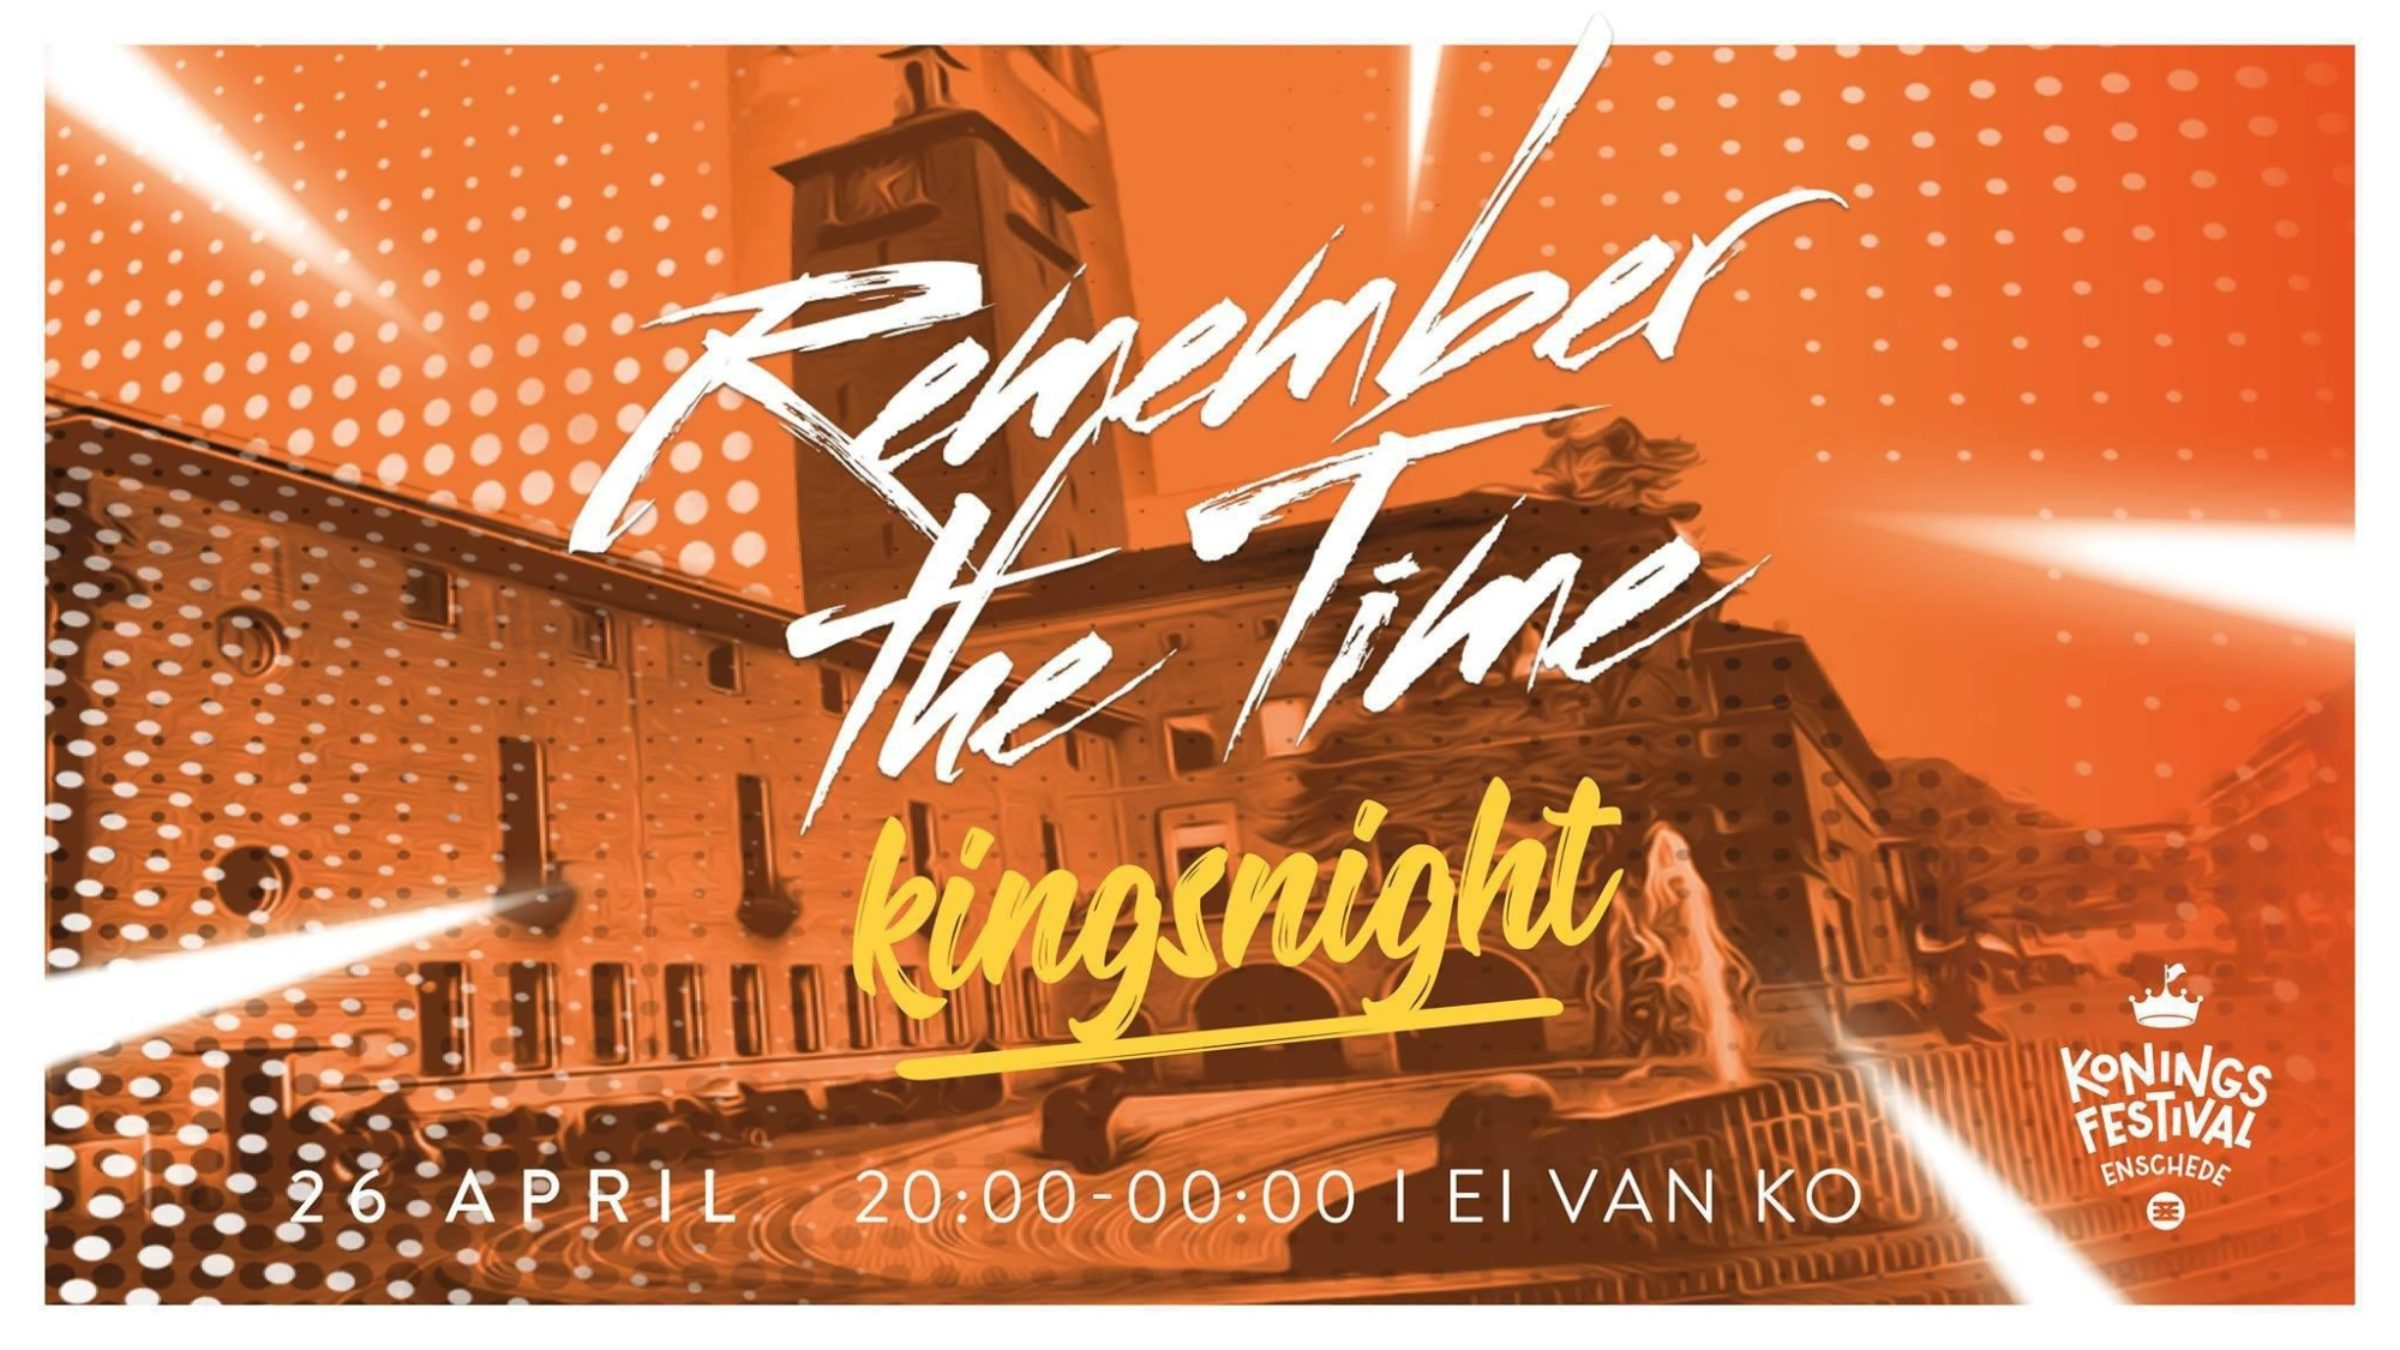 Remember the time kingsnight 2417 1552379525 35hxecr1uj